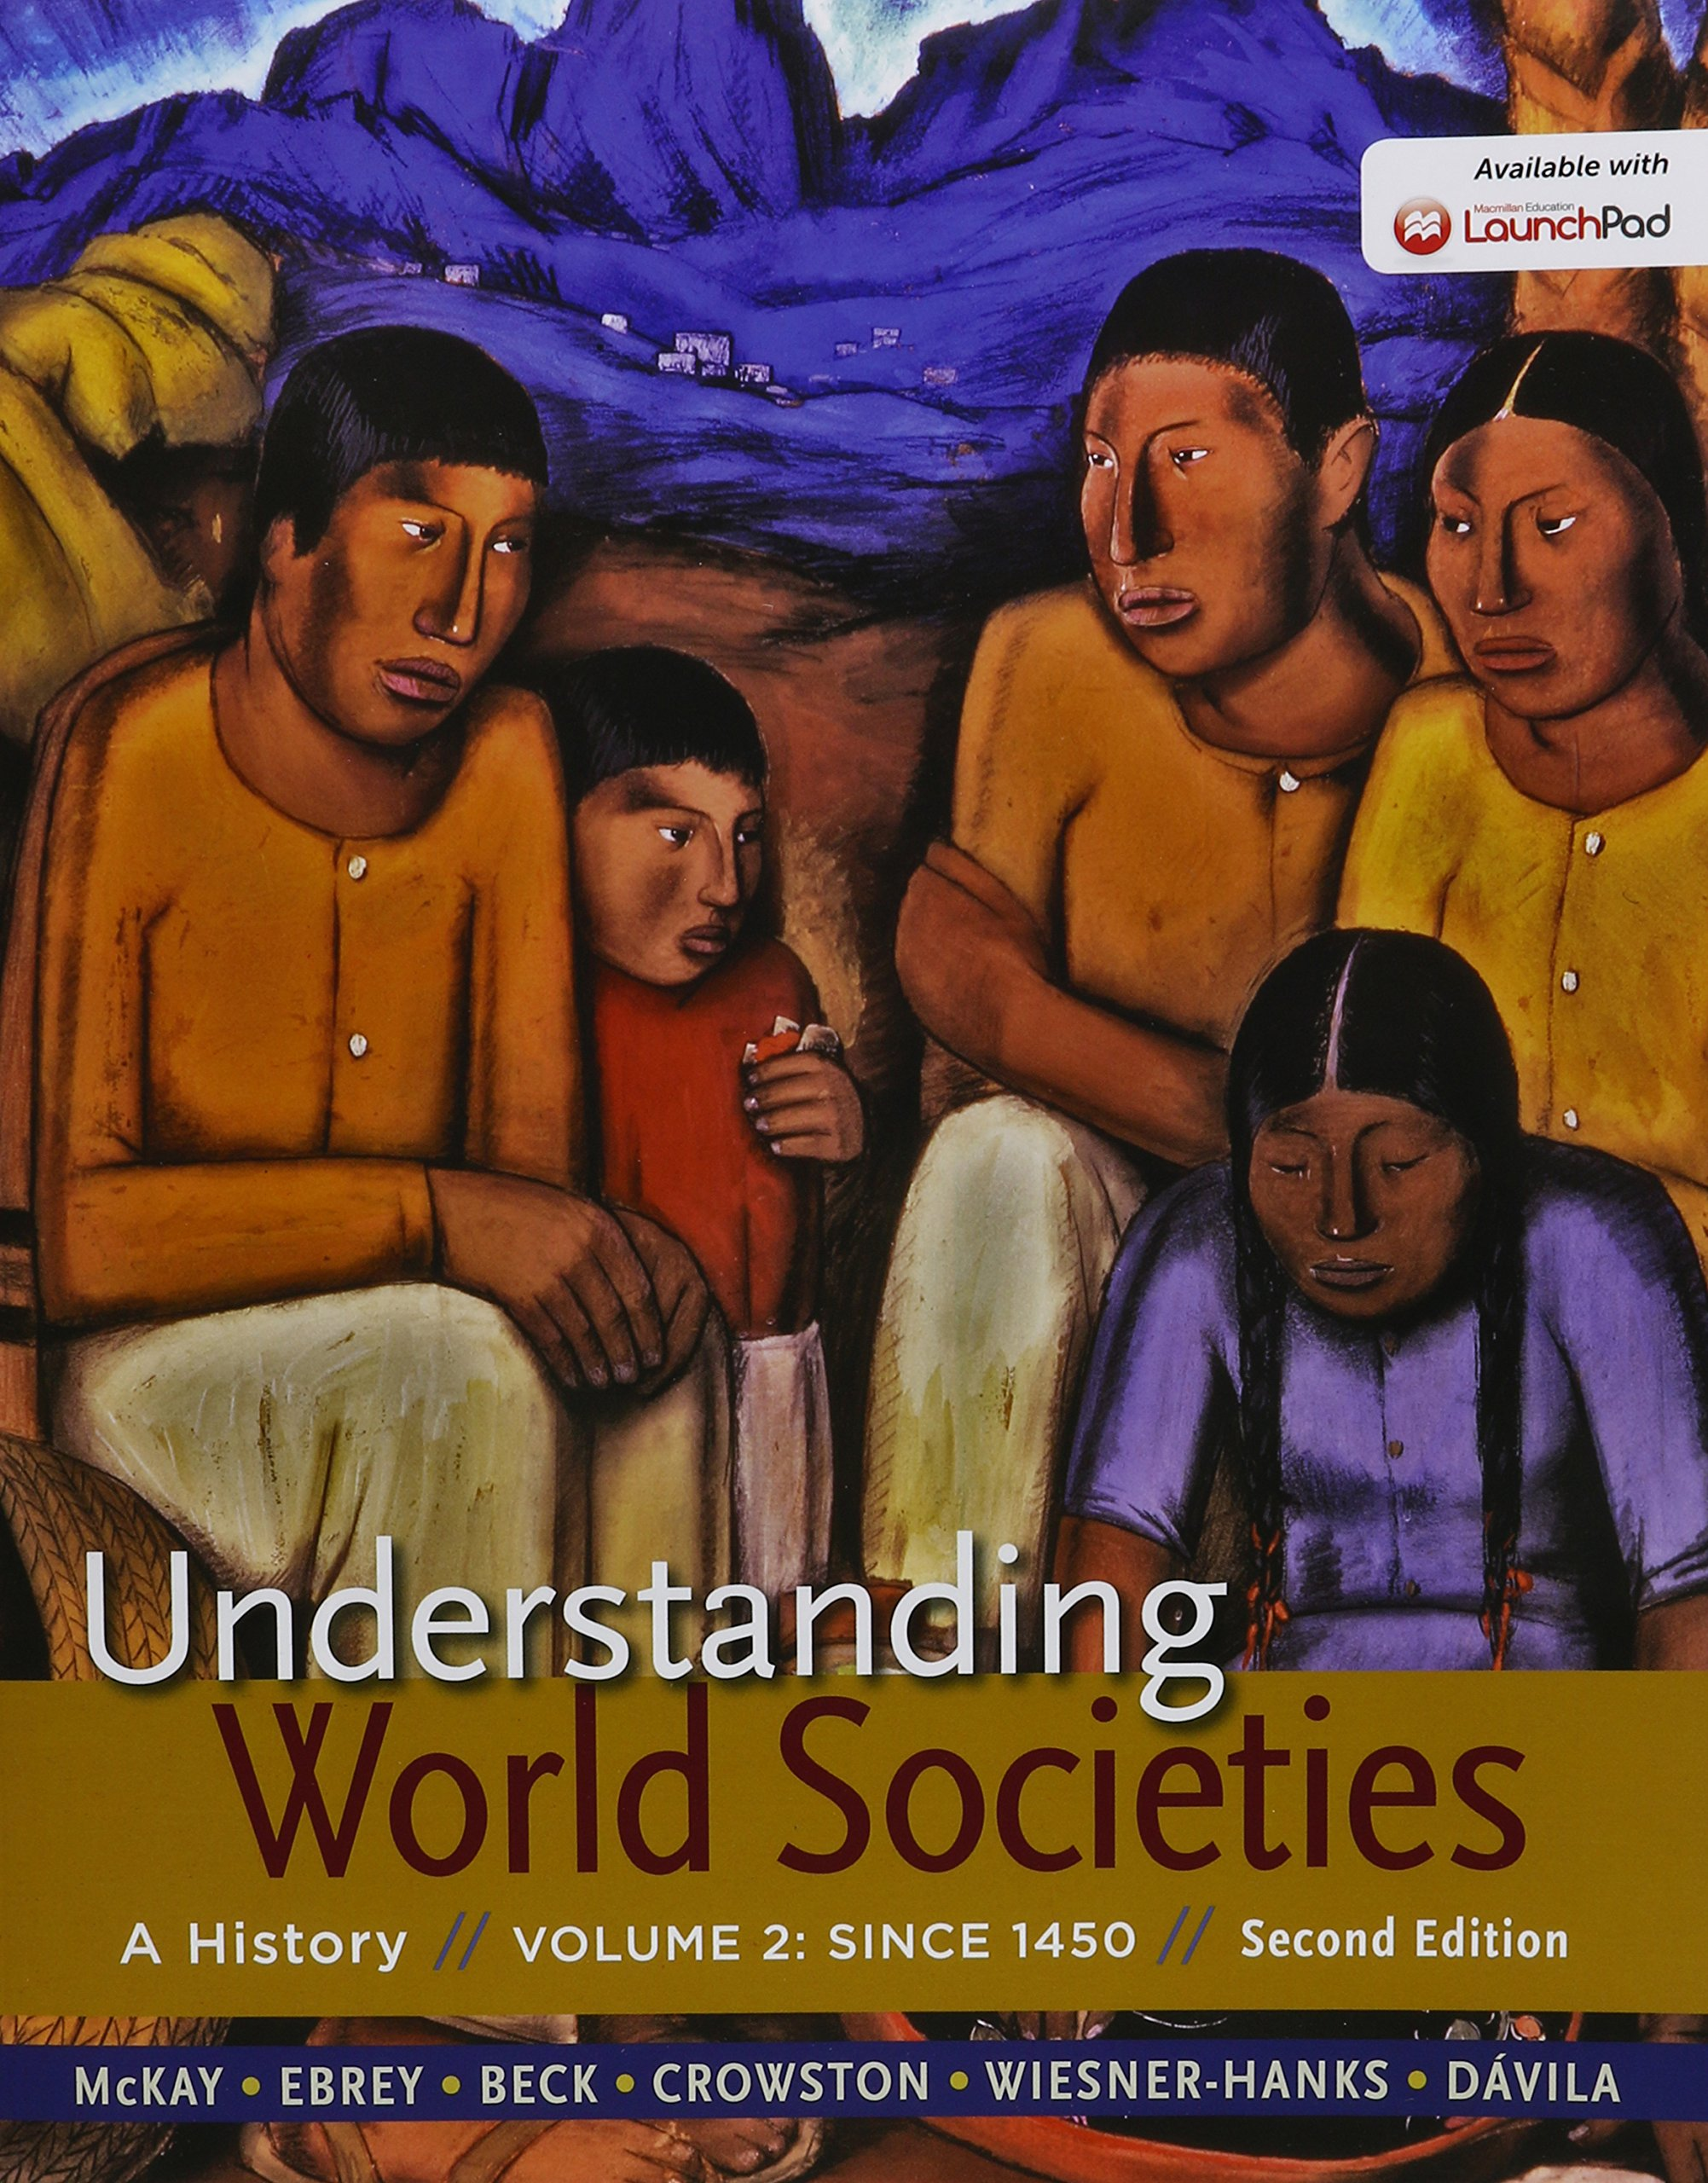 Understanding World Societies 2e V2 & Launchpad for Understanding World  Societies 2e (Six Month Access): 4: Amazon.co.uk: University John P McKay,  ...